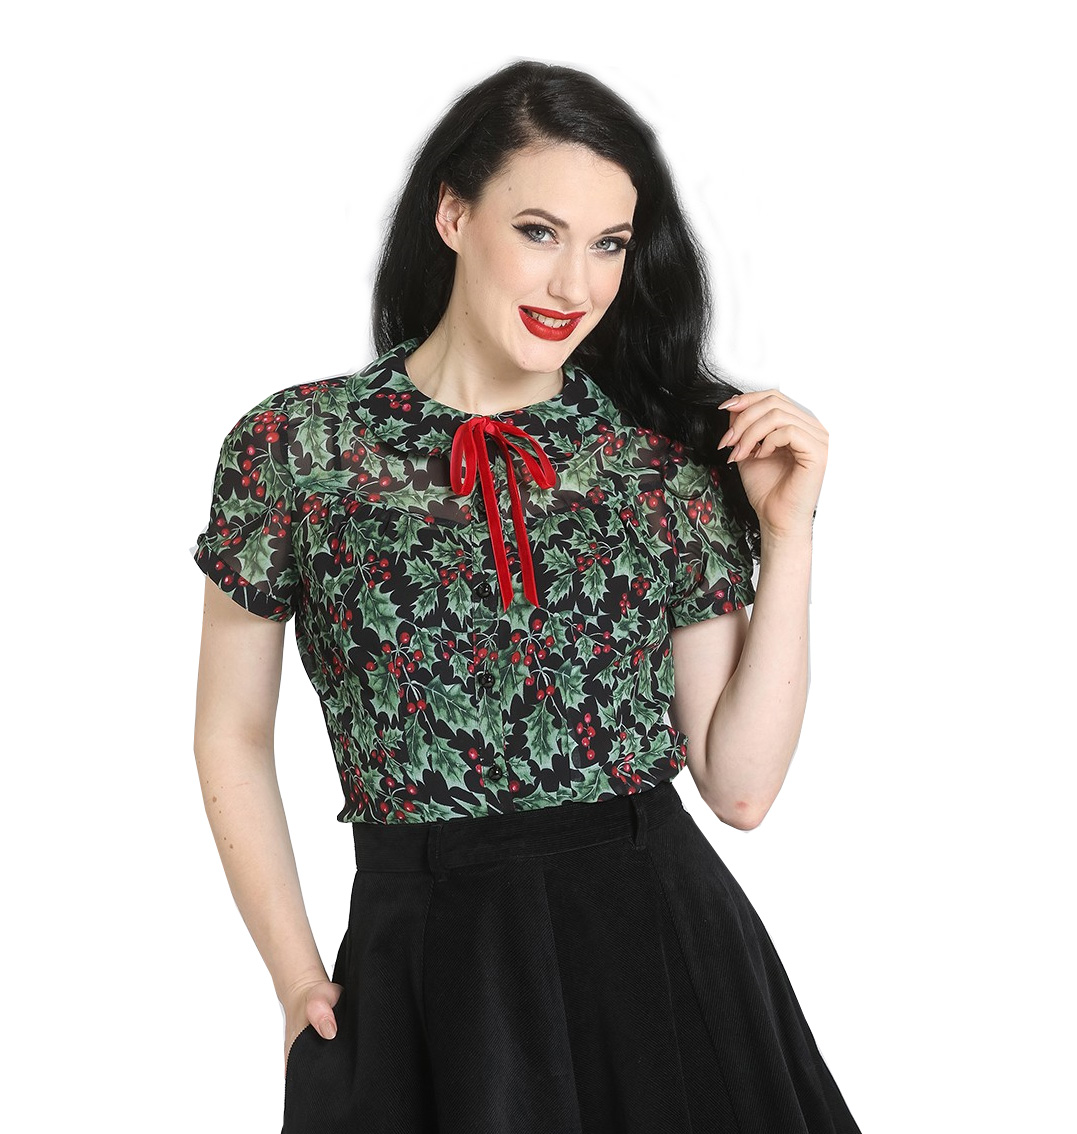 Hell-Bunny-50s-Shirt-Top-Christmas-Festive-HOLLY-Berry-Blouse-Black-All-Sizes thumbnail 17